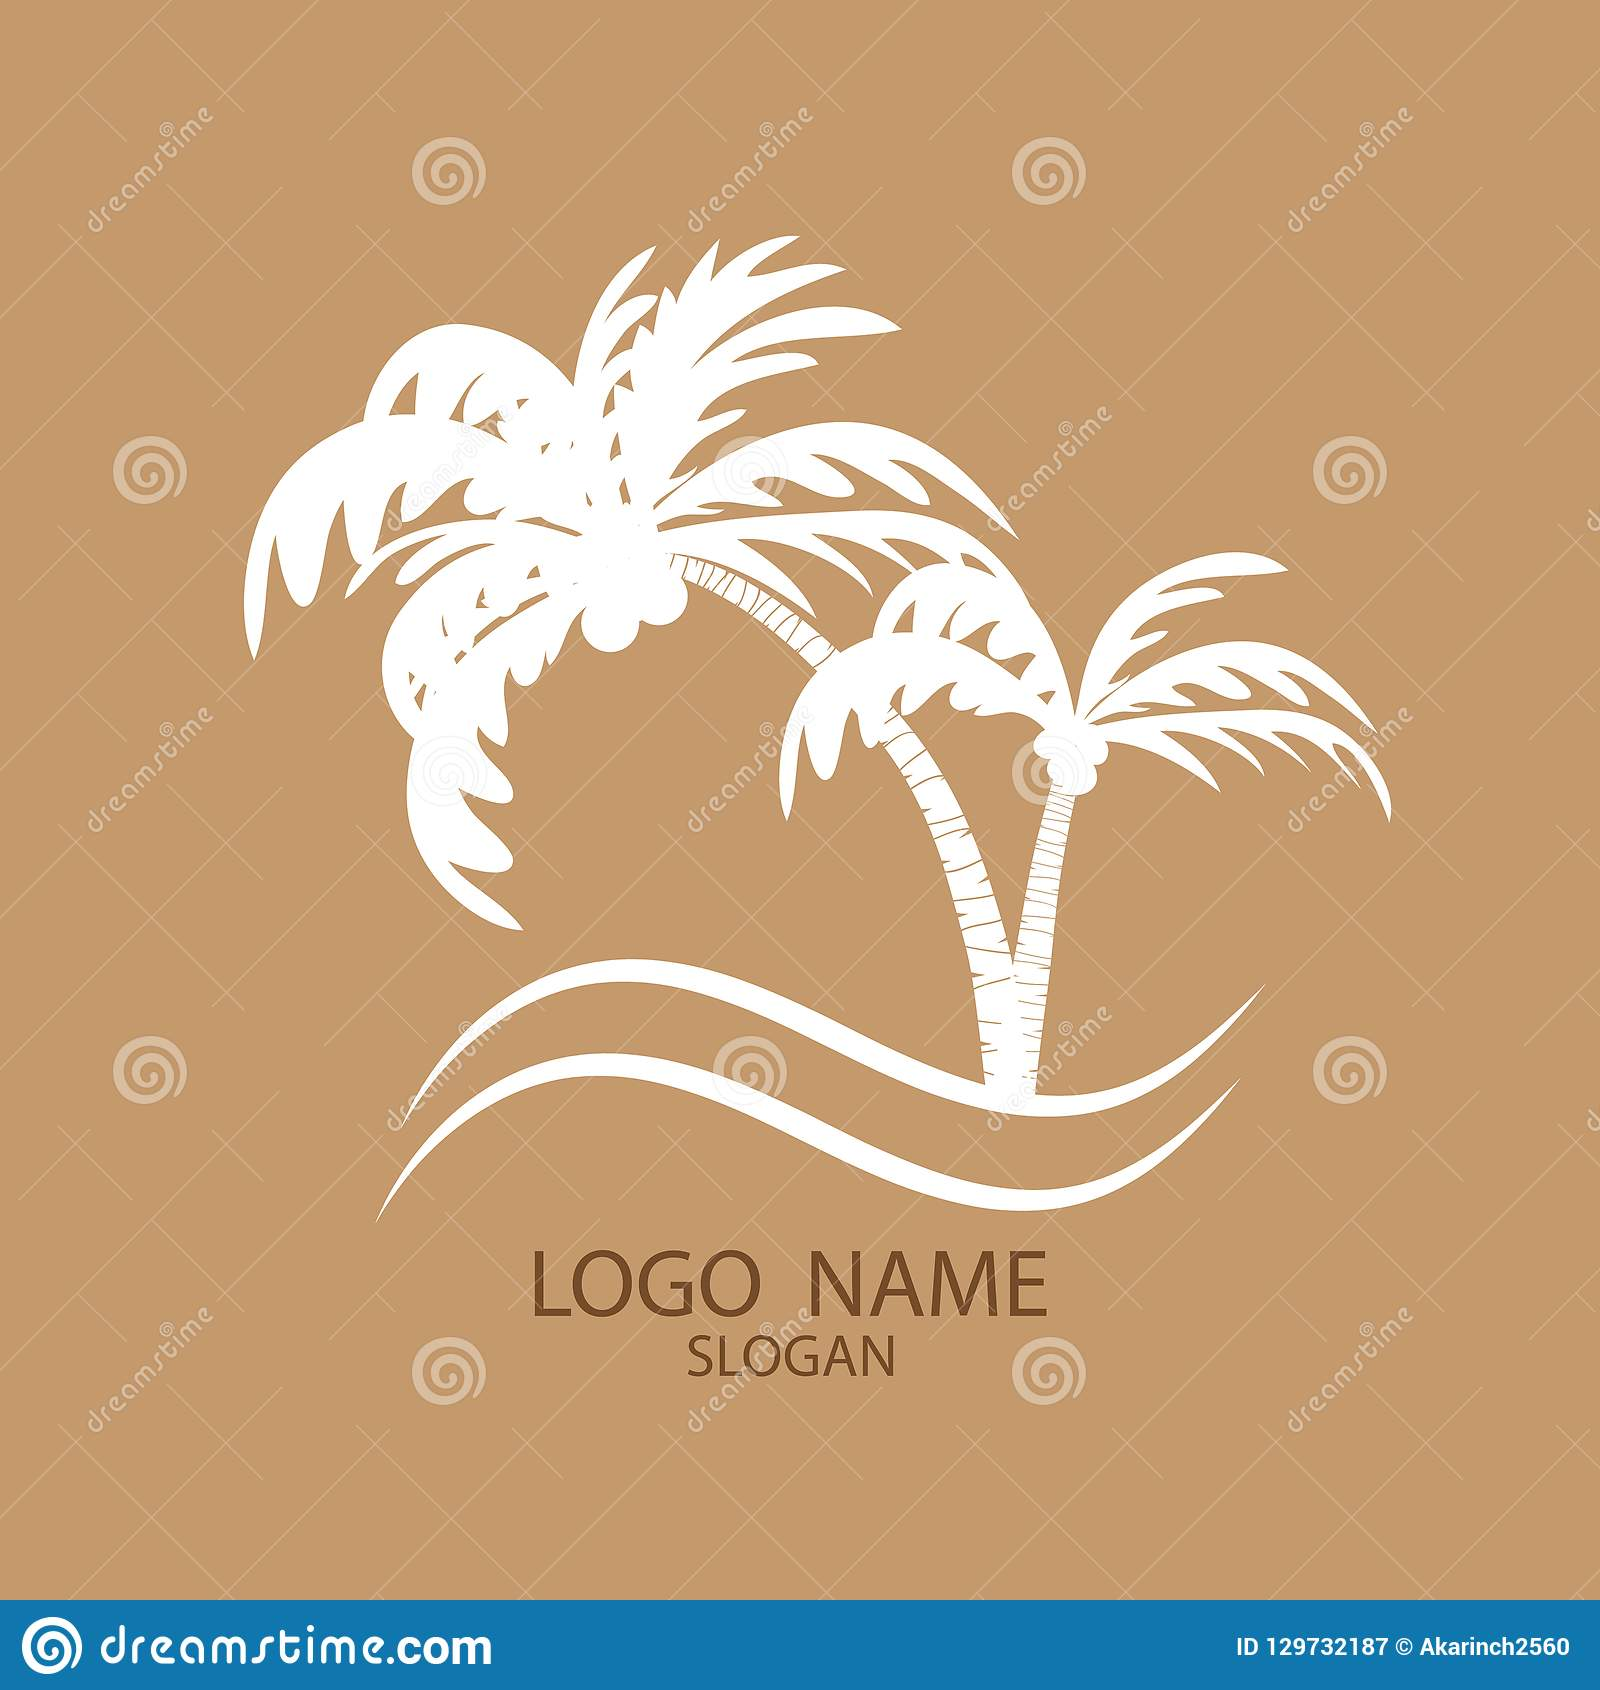 Logo of palm and coconut trees.